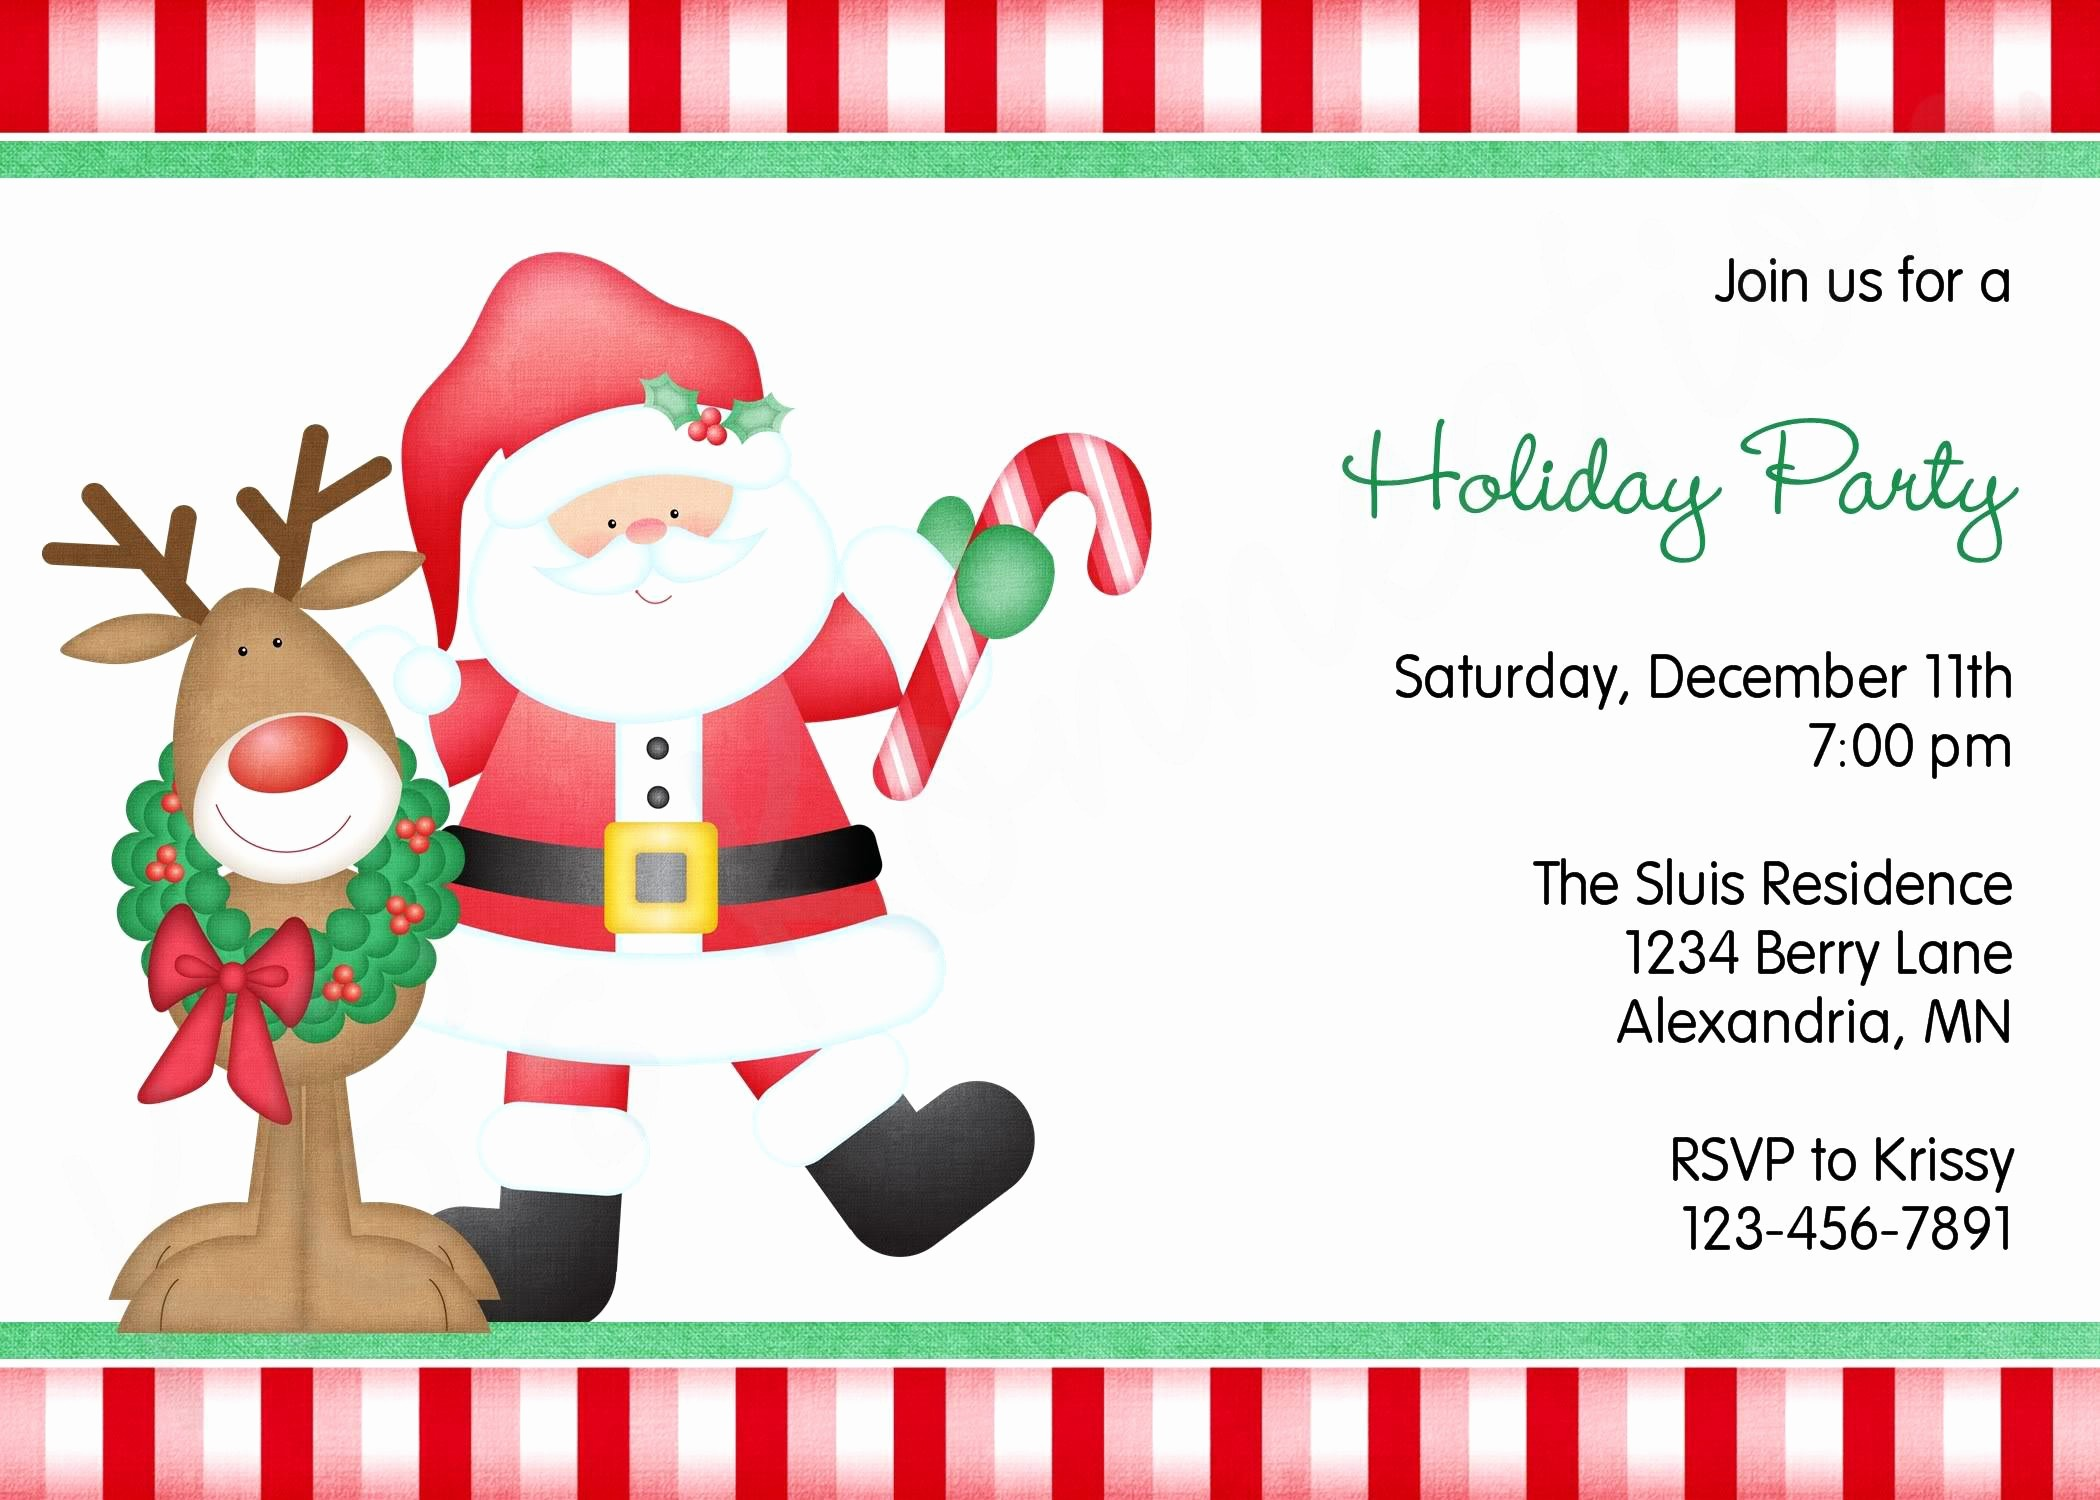 Christmas Party Invite Free Template New Free Christmas Party Invitations